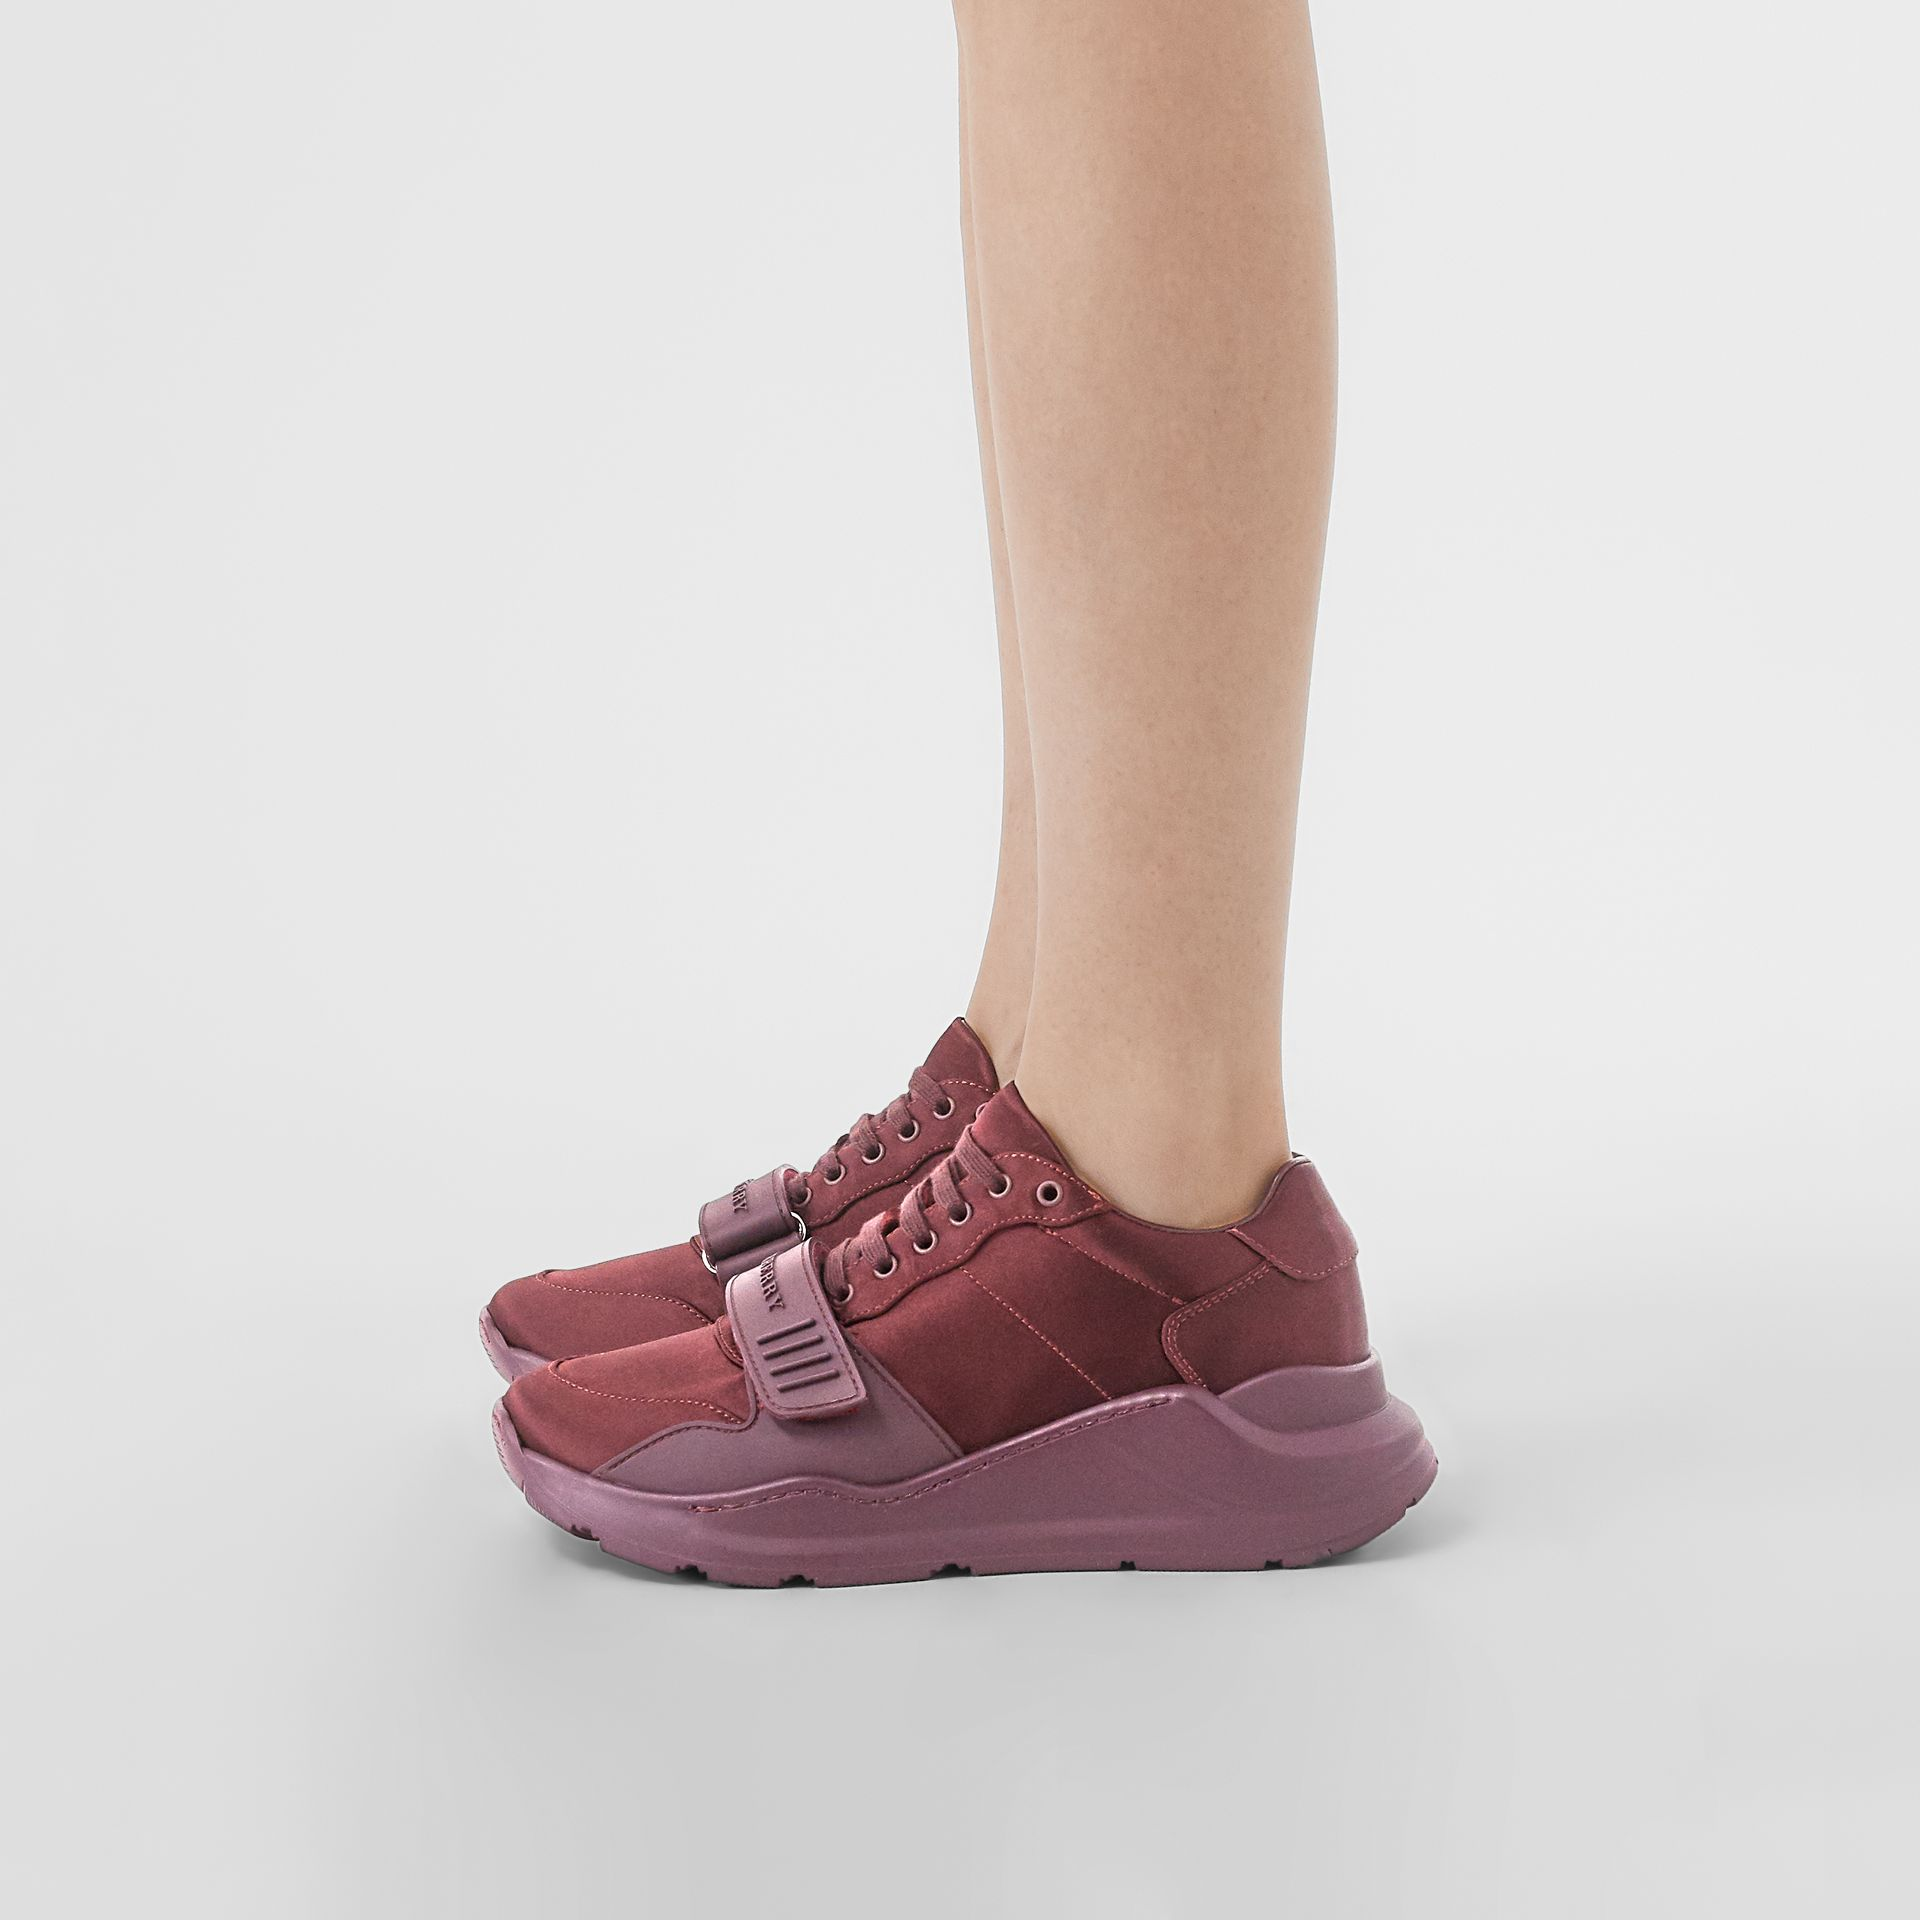 Satin Sneakers in Claret - Women | Burberry - gallery image 2